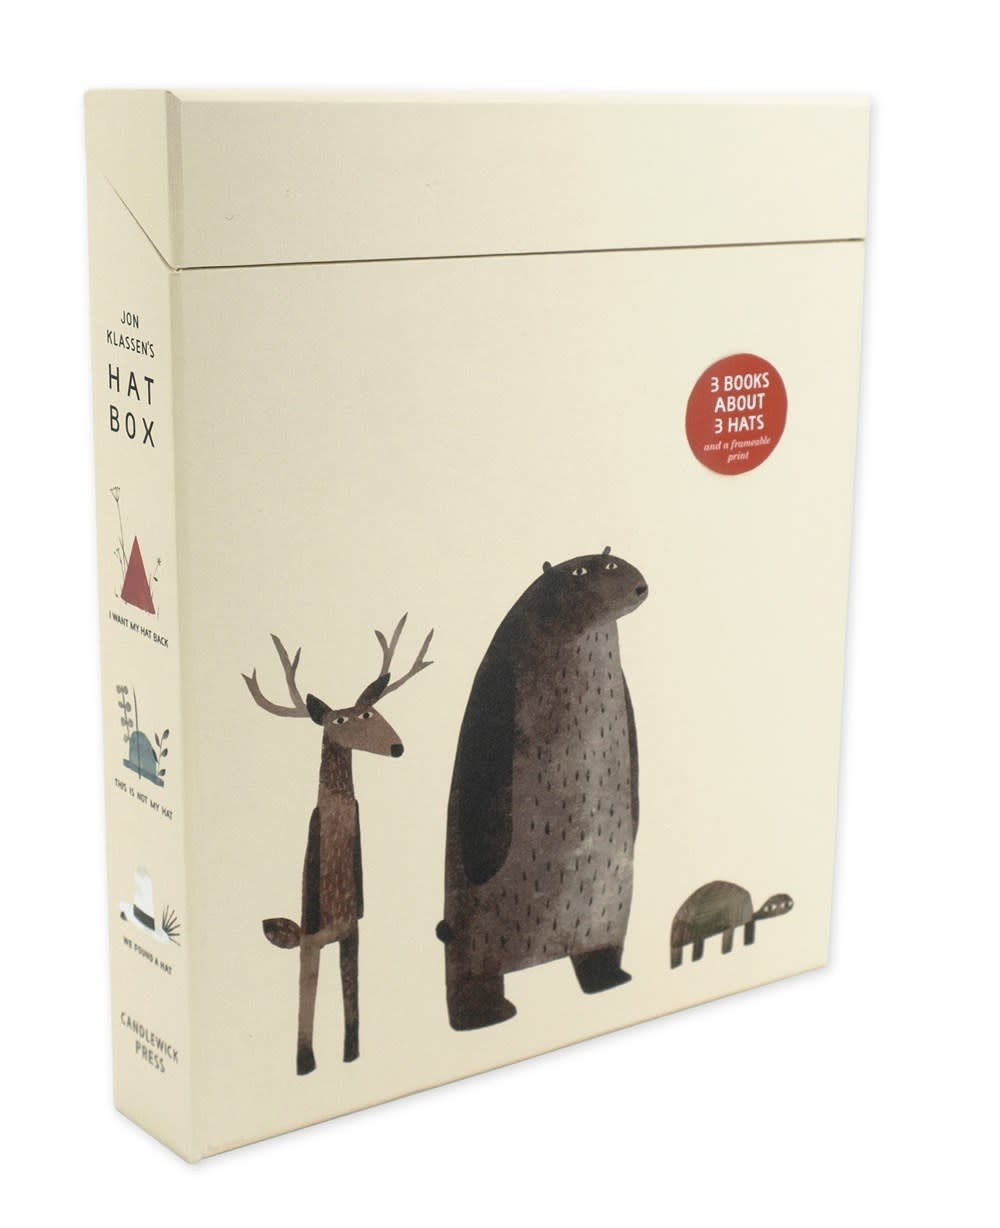 Candlewick Jon Klassen's Hat Box Boxed Set (3 Books)